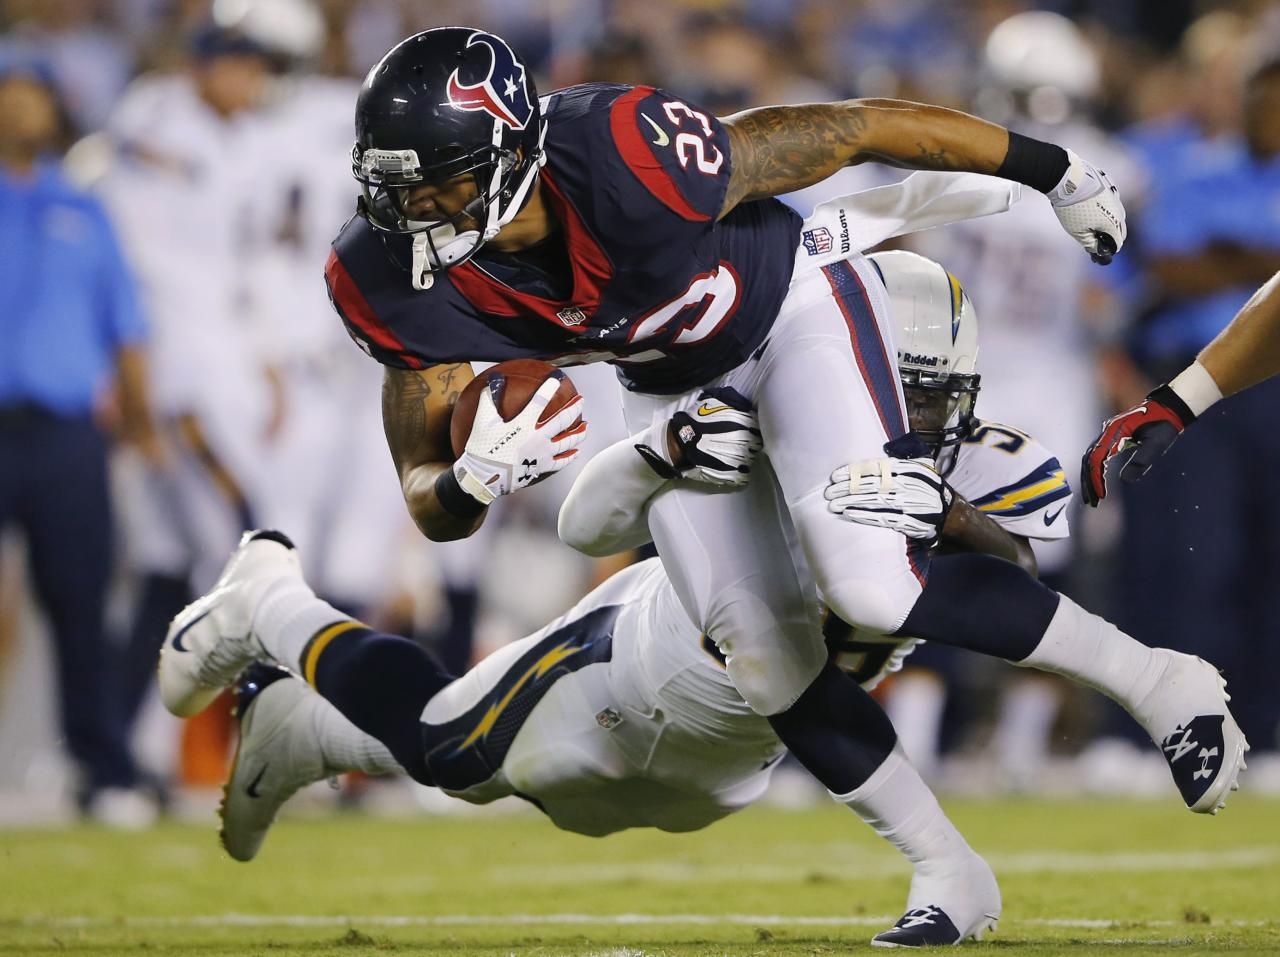 Houston Texans running back Arian Foster (23) is tackled by San Diego Chargers inside linebacker Donald Butler during their Monday Night NFL football game in San Diego, California September 9, 2013.REUTERS/Mike Blake (UNITED STATES - Tags: SPORT FOOTBALL)